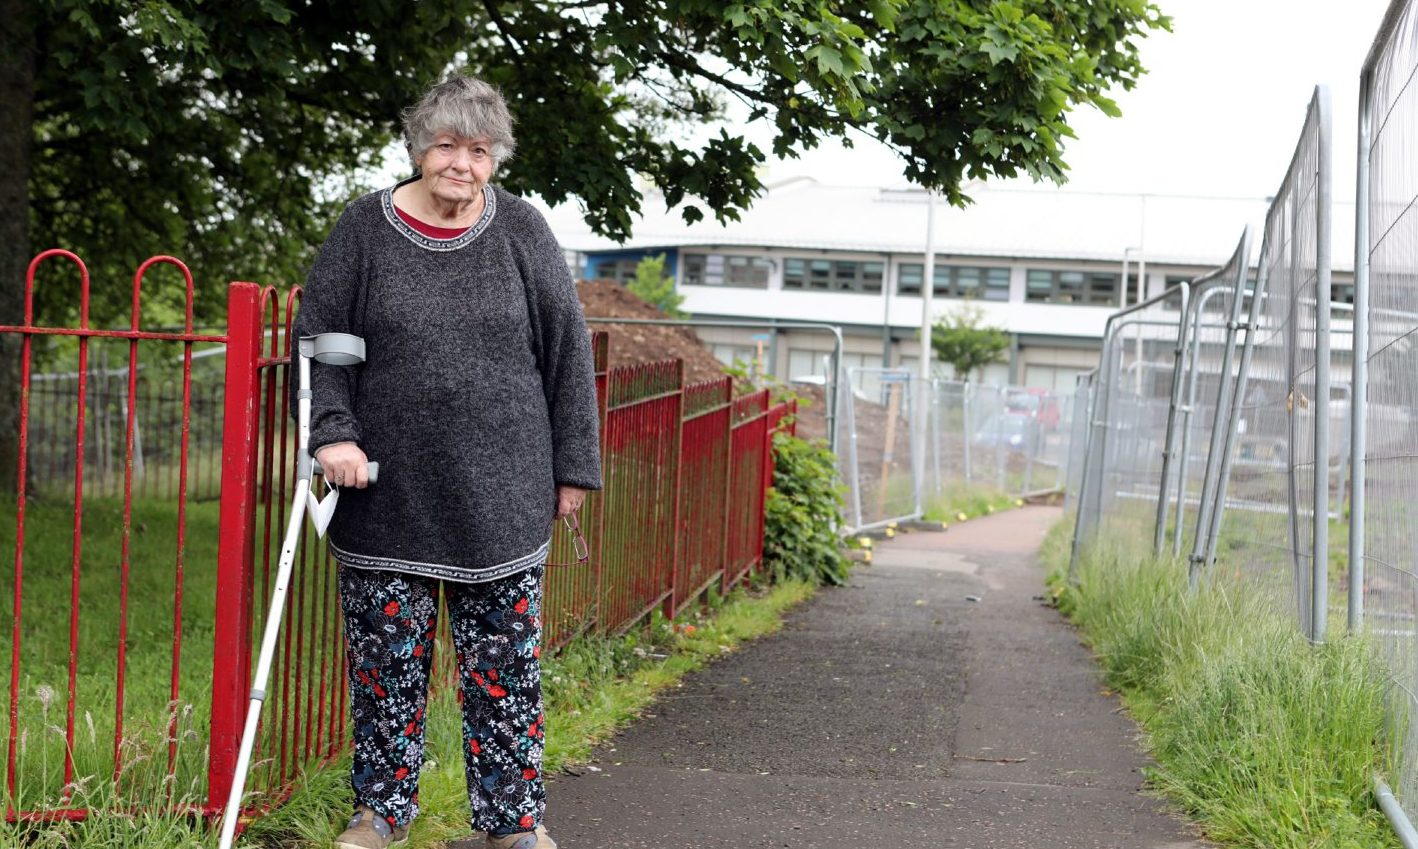 Patsy Pepper is one of the residents concerned about the future of the footpath.